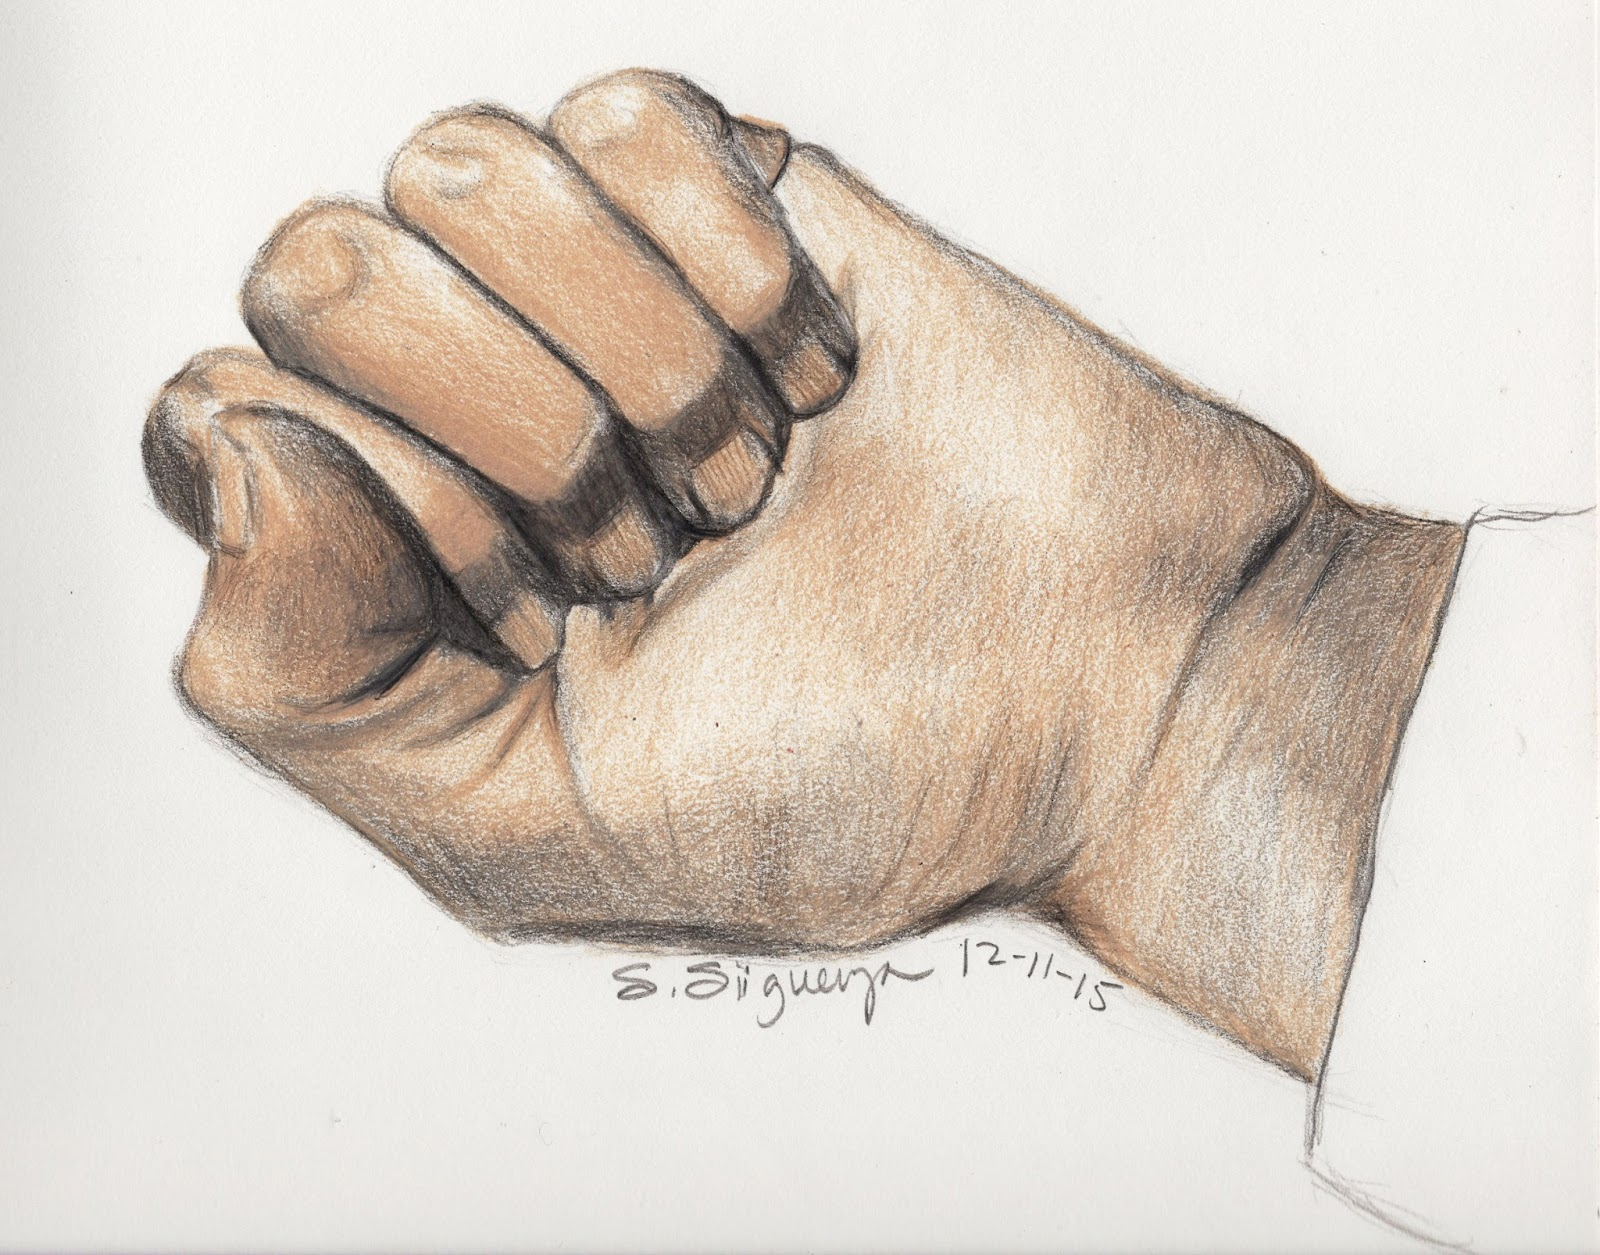 1600x1255 Male Hand Drawing With Curled Fingers, Hand Palm Pencil Sketch